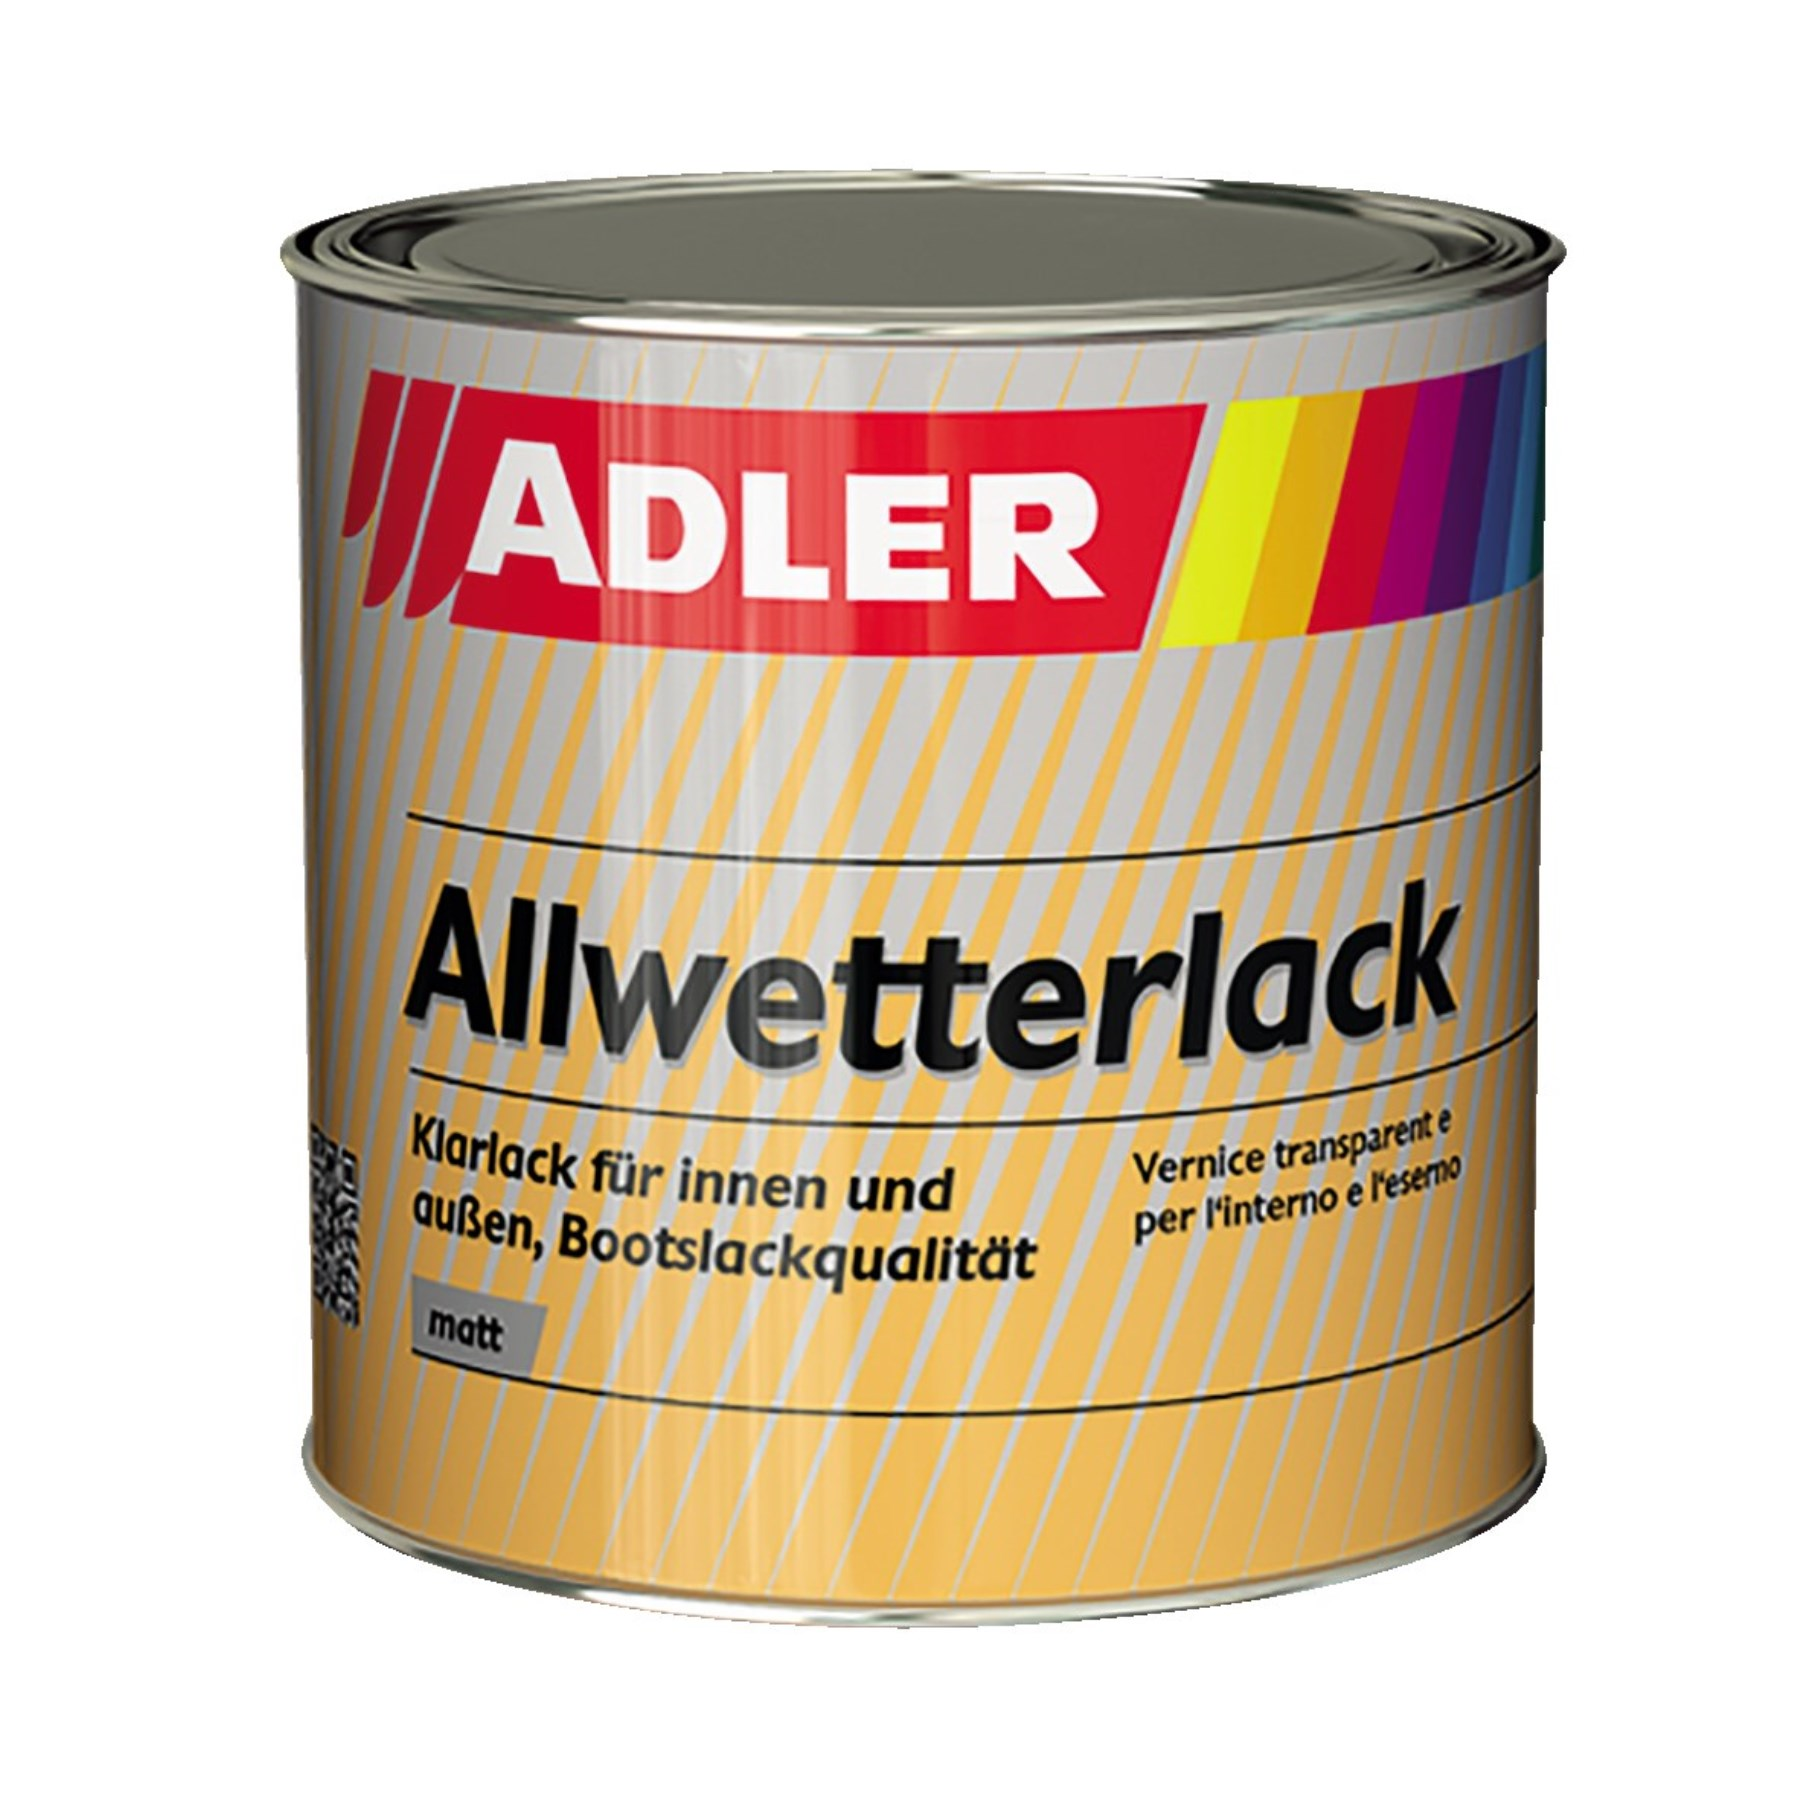 1122484 - Allwetterlack matt.375ml UV-Rapid